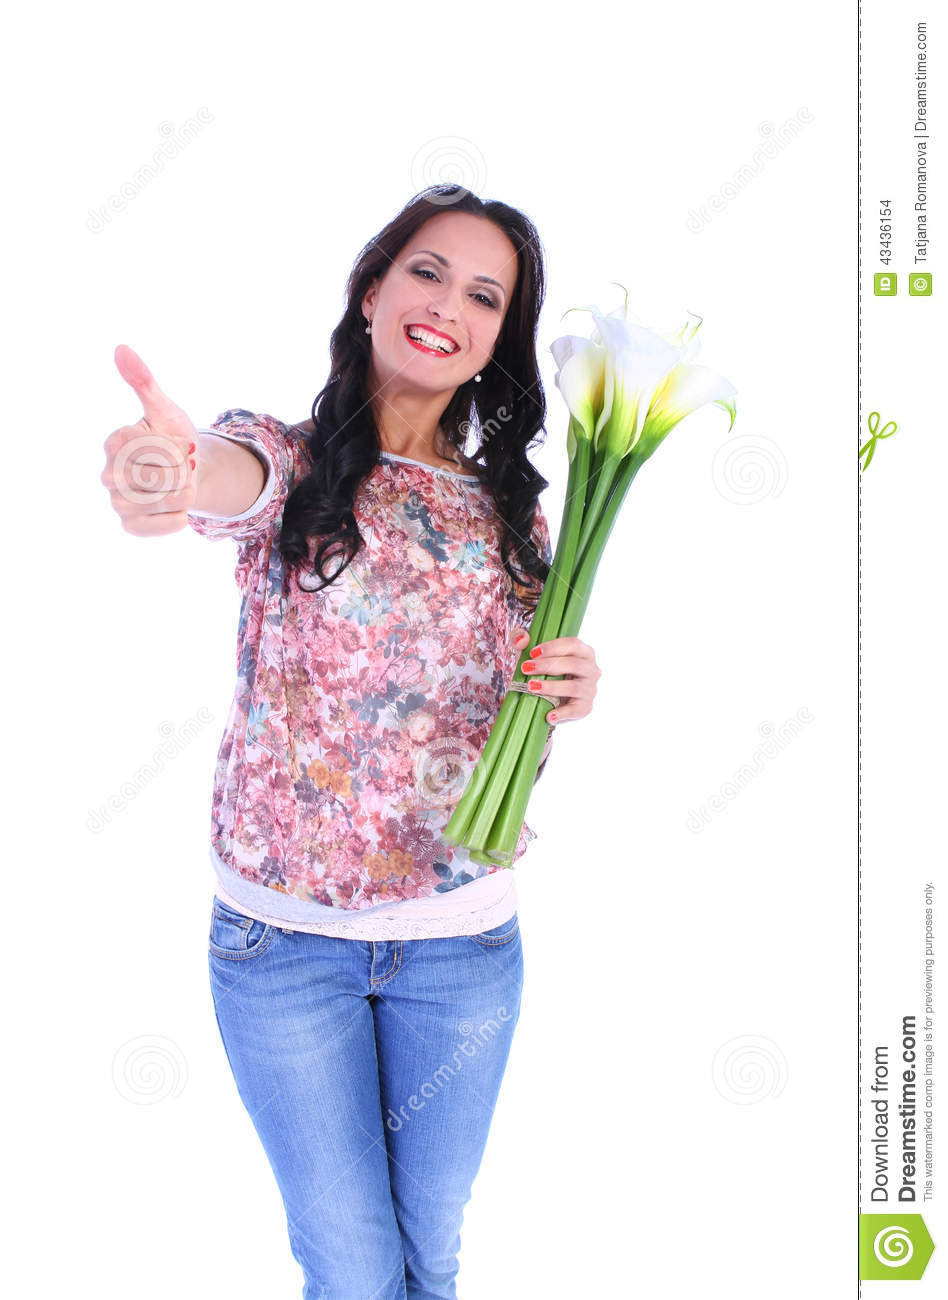 Woman with bunch of flowers showing thumb